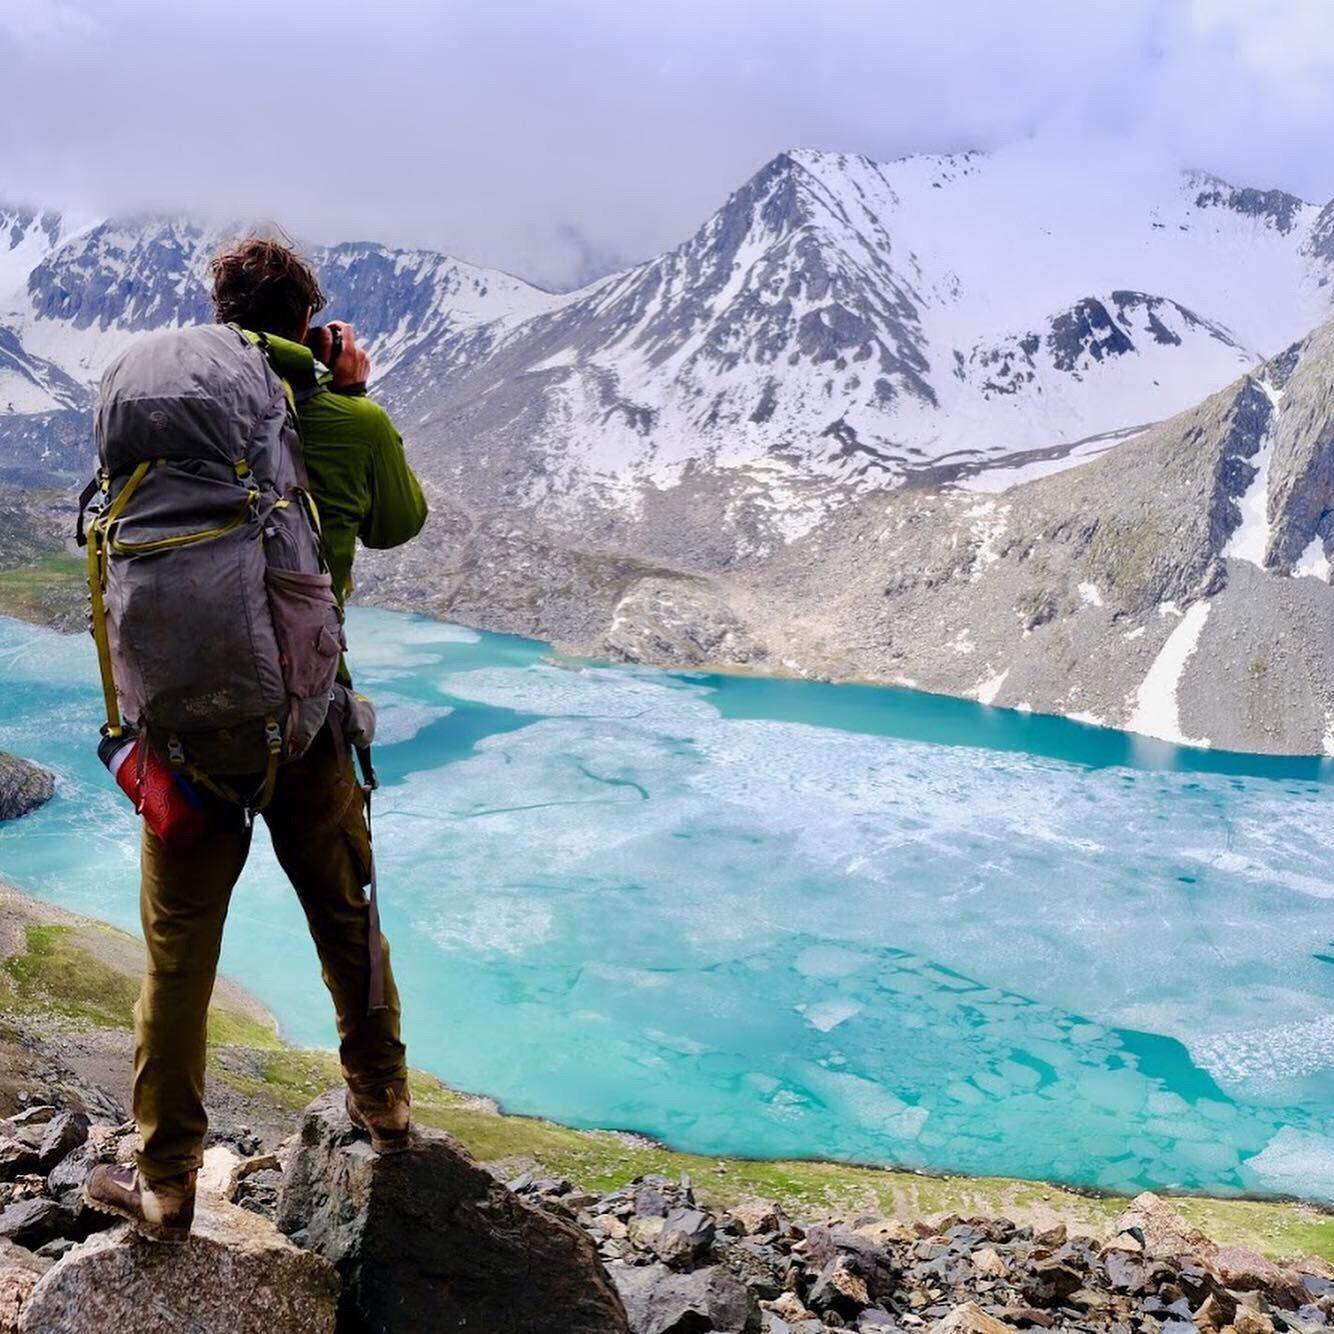 A single adventurer on a hiking trip in Kyrgyzstan